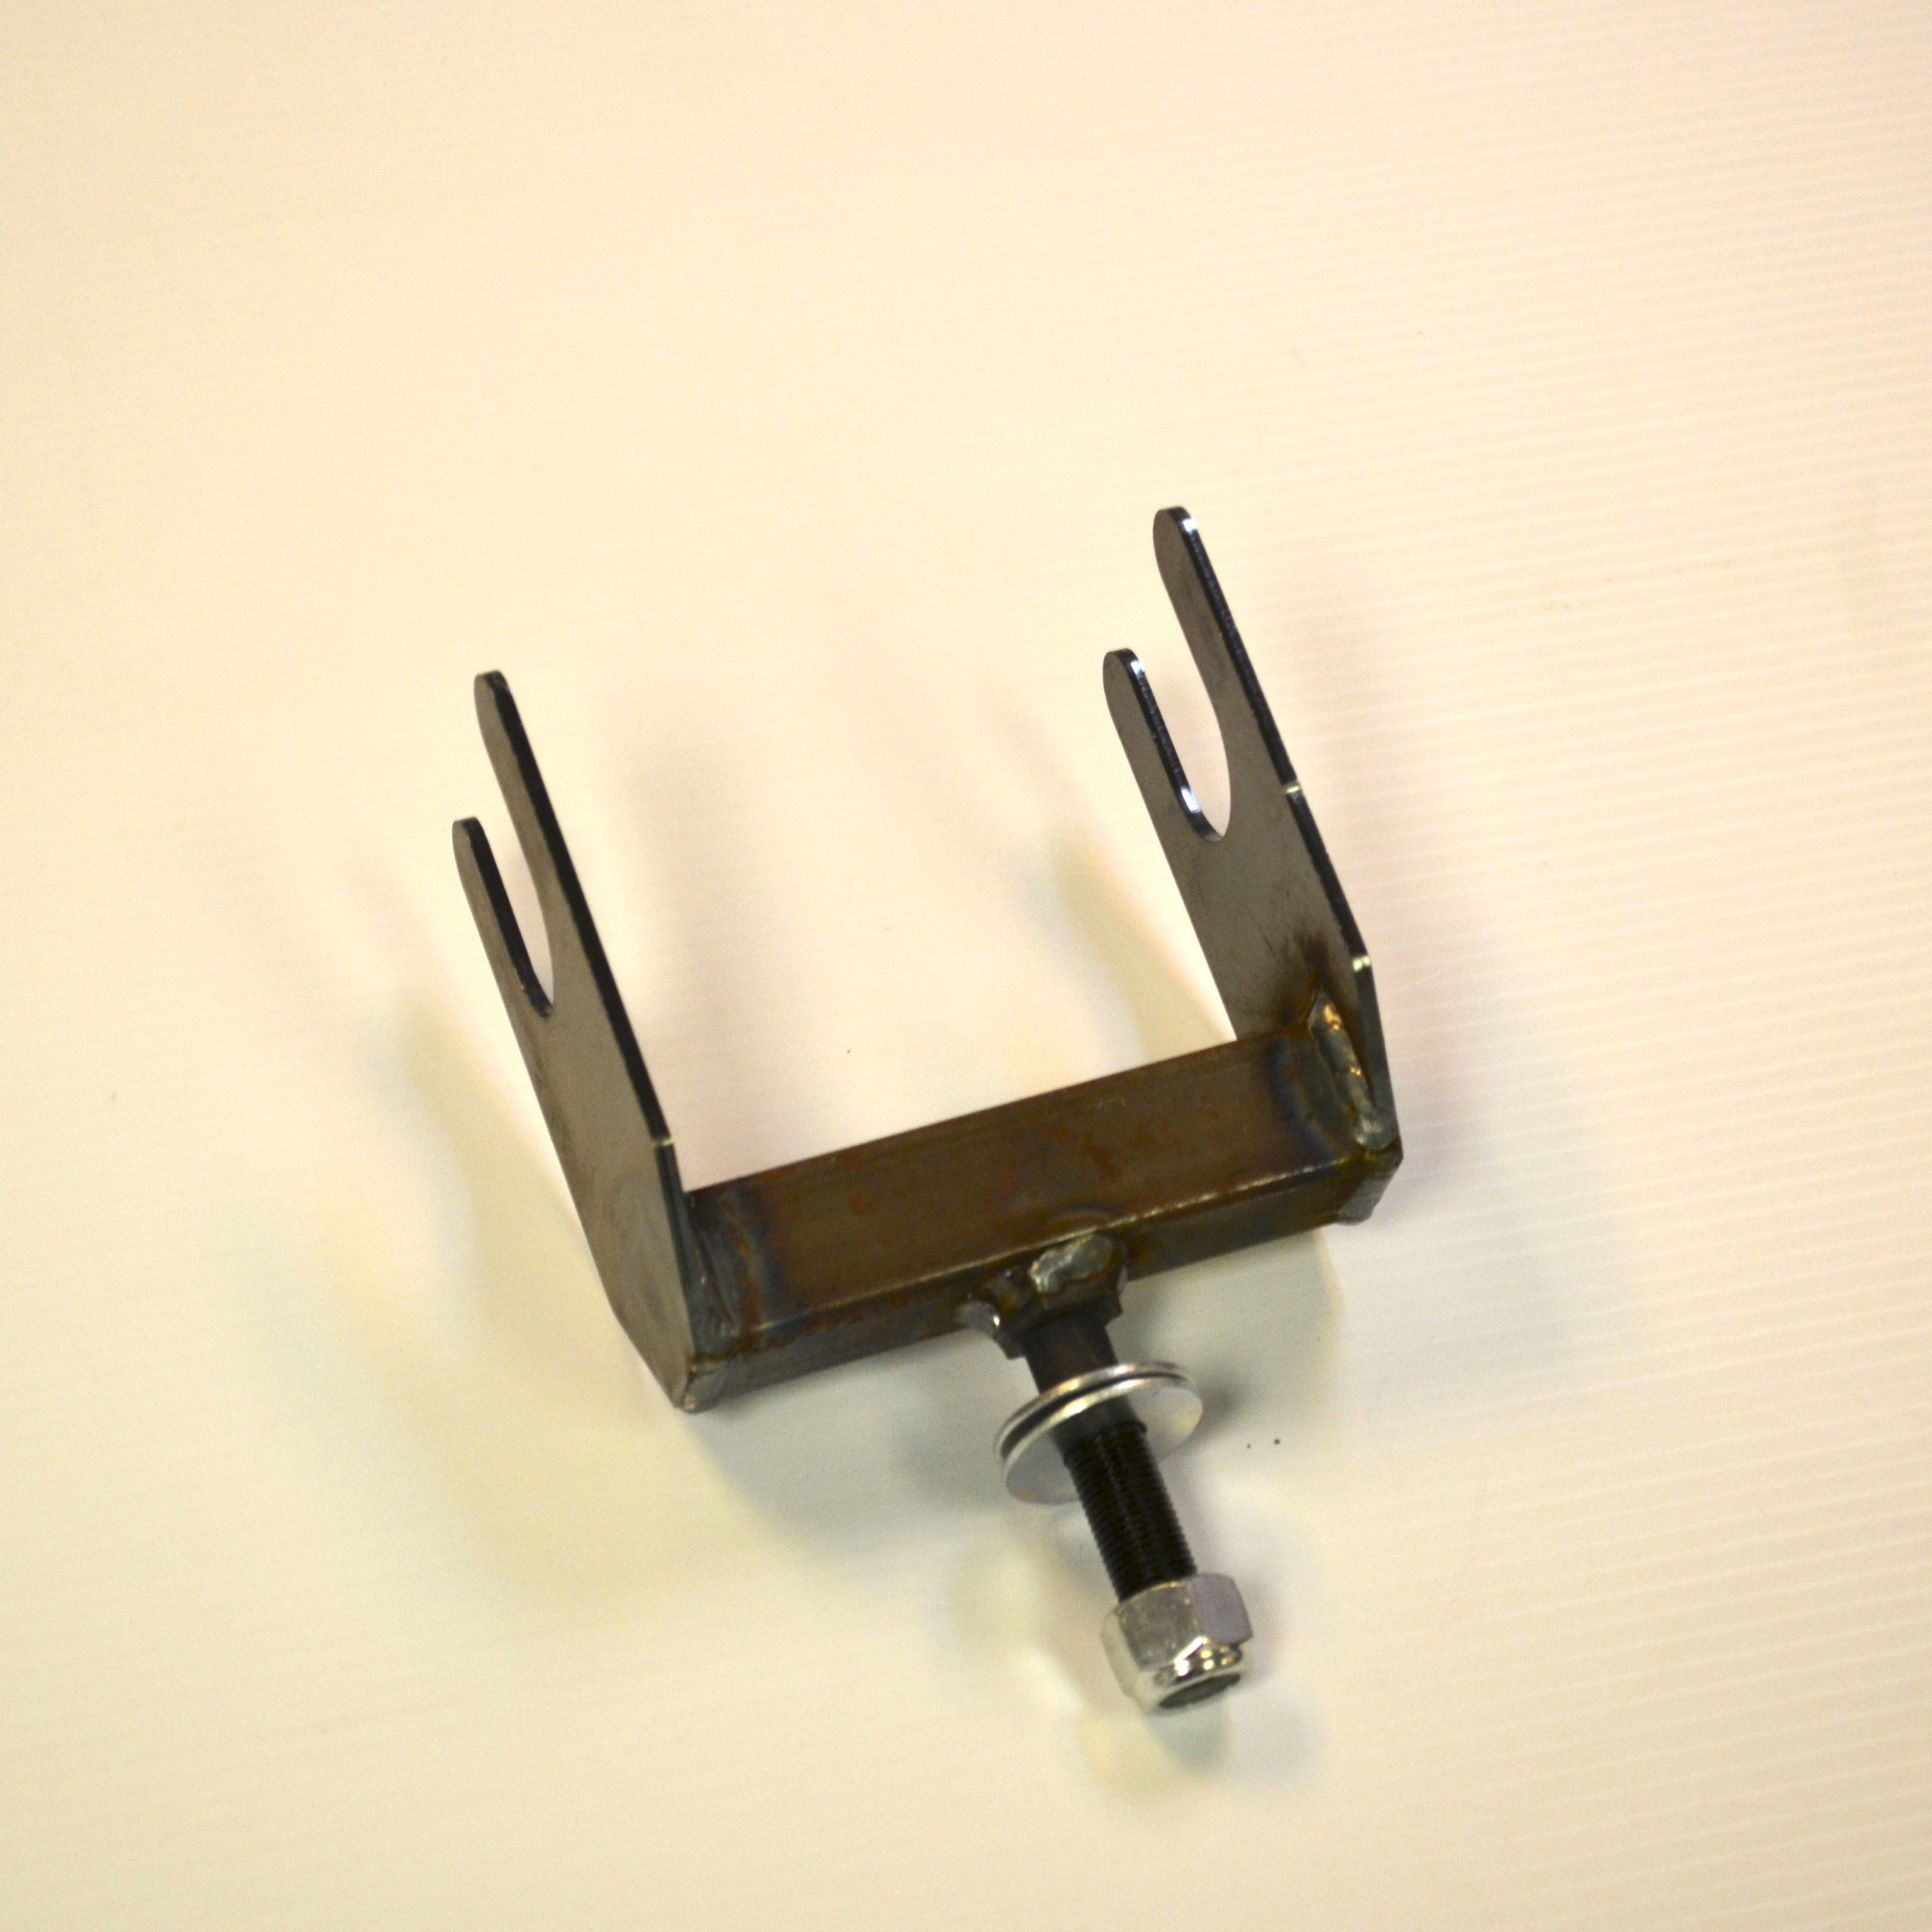 Tow dolly saddle for junior dragster tow dolly